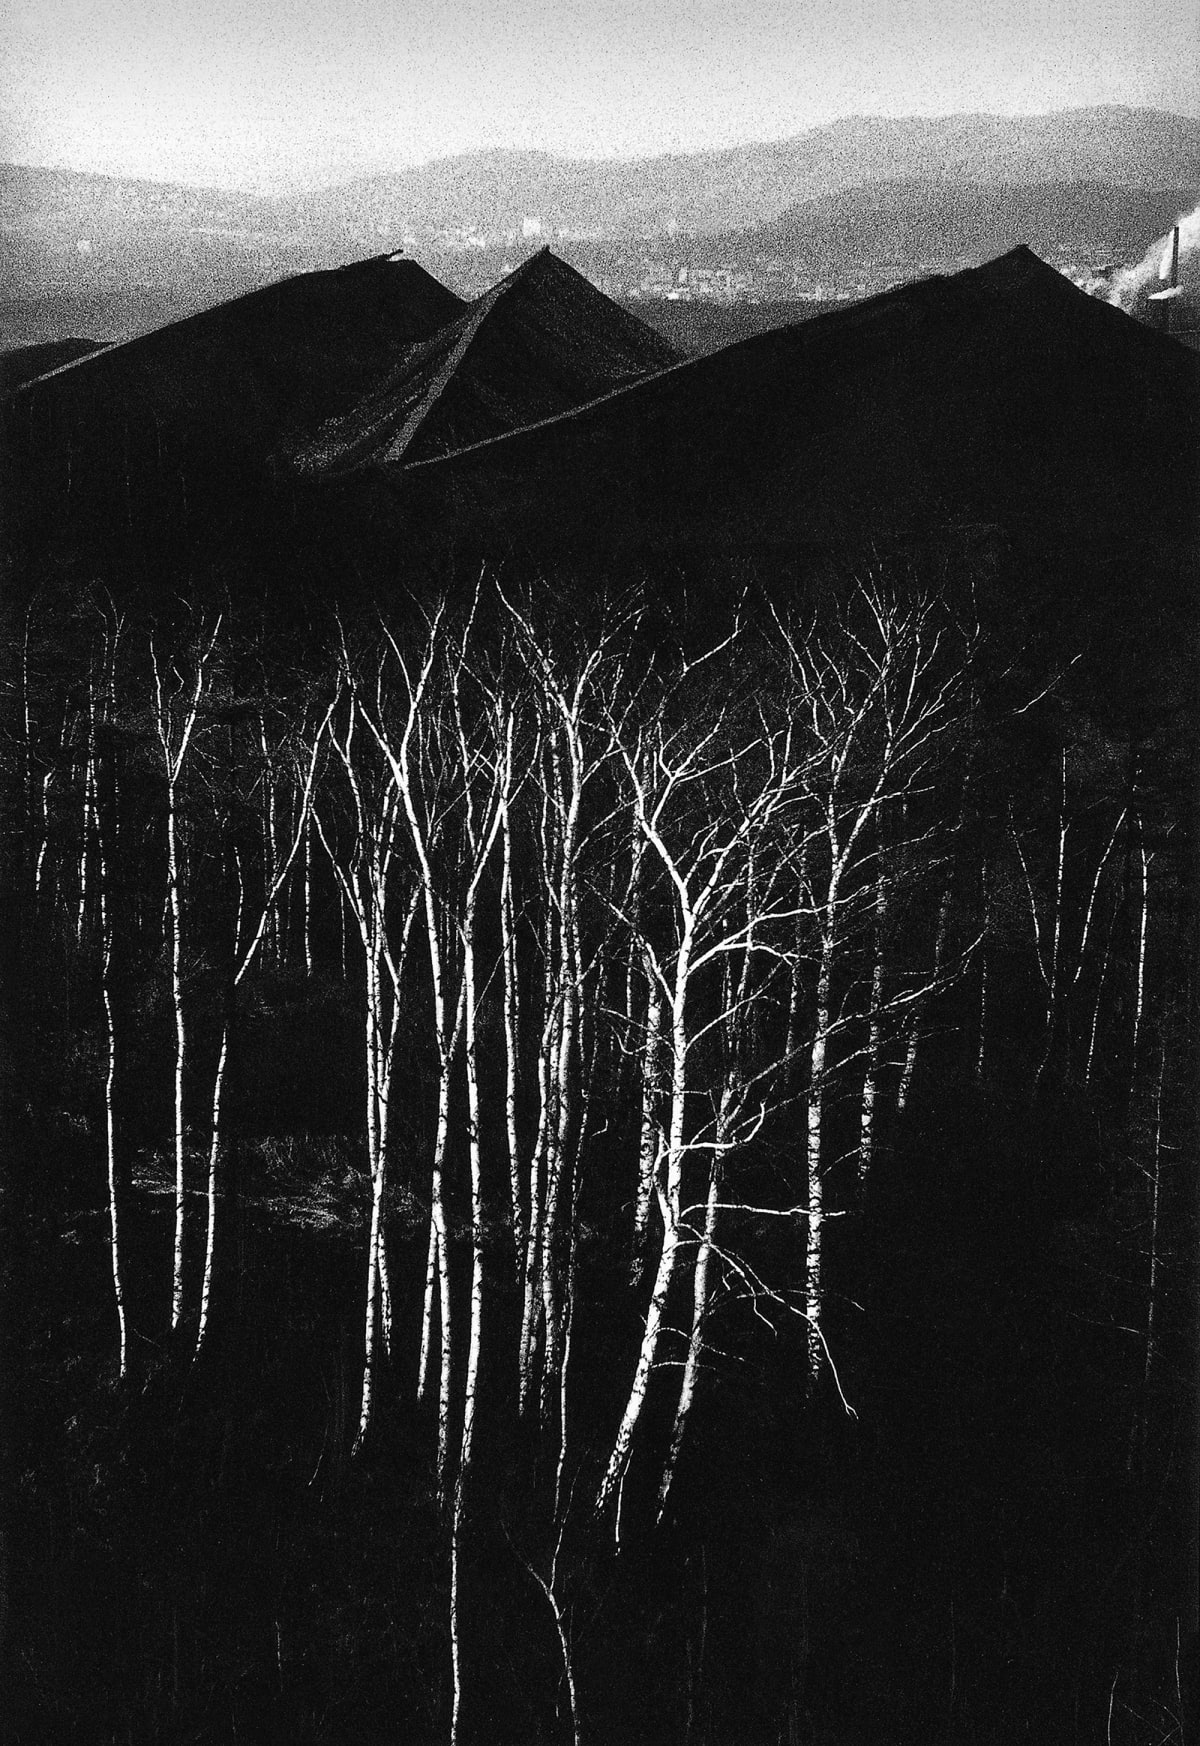 Michal Cala, Forest at the bottom of the Slagheaps, Walbrzych, 1979